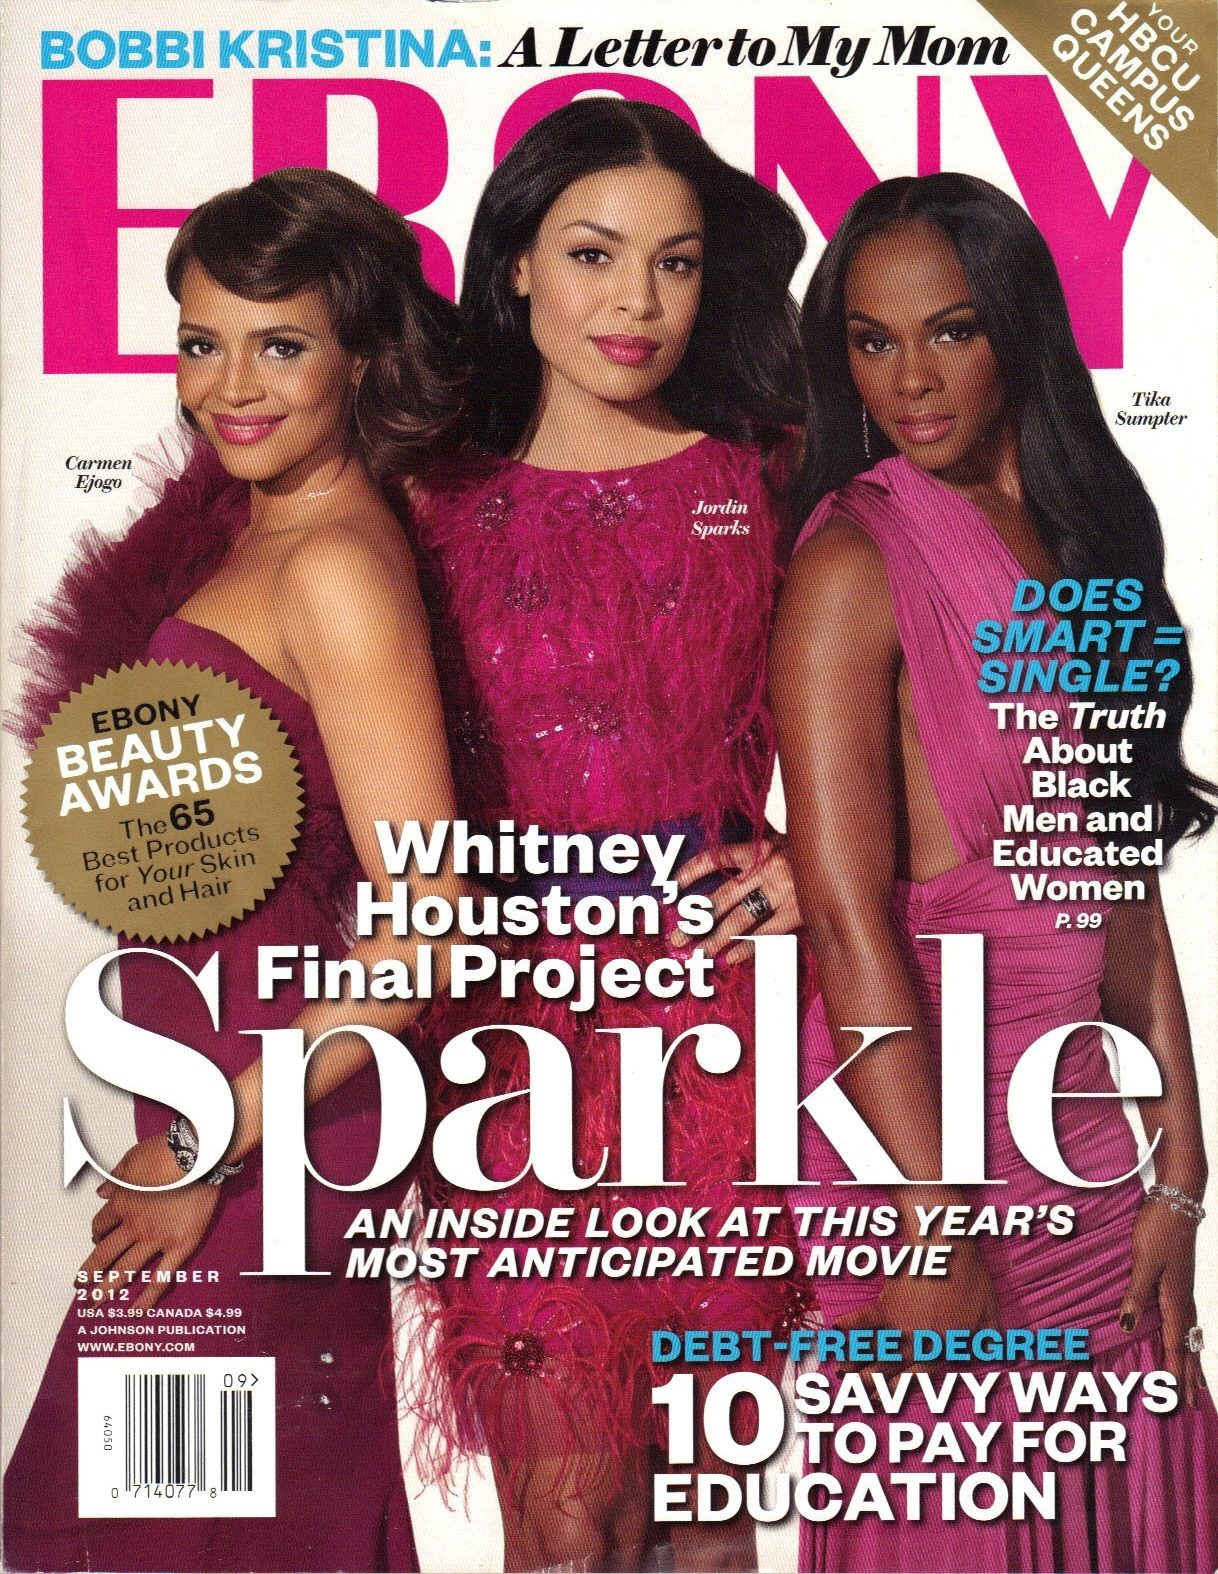 1_0_1ebony_sparkle_cover.jpg